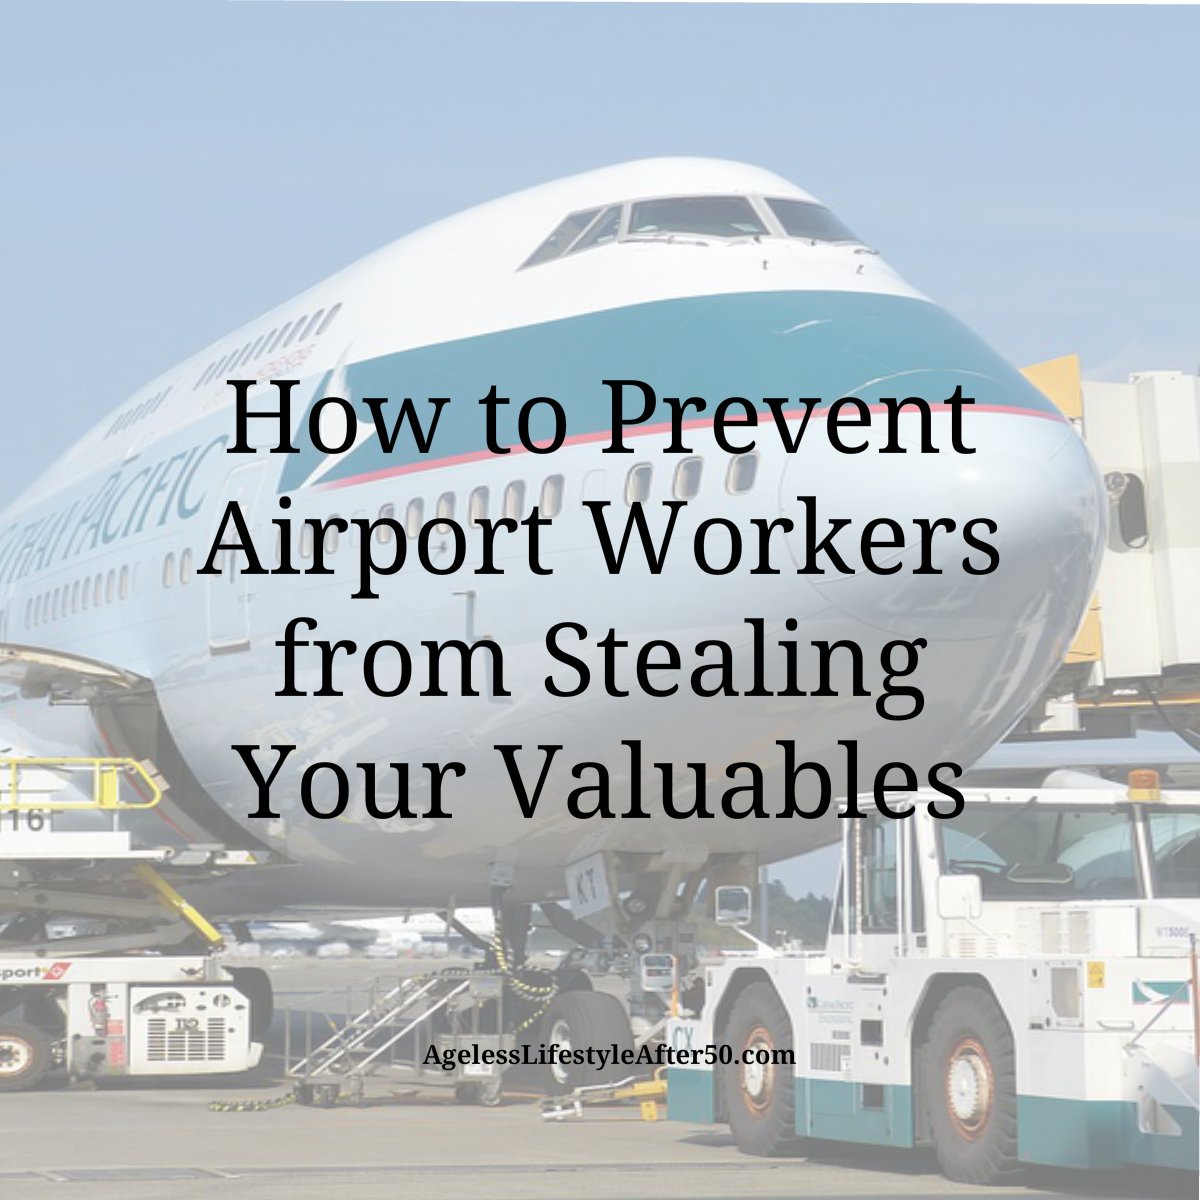 How to Prevent Airport Workers from Stealing Your Valuables